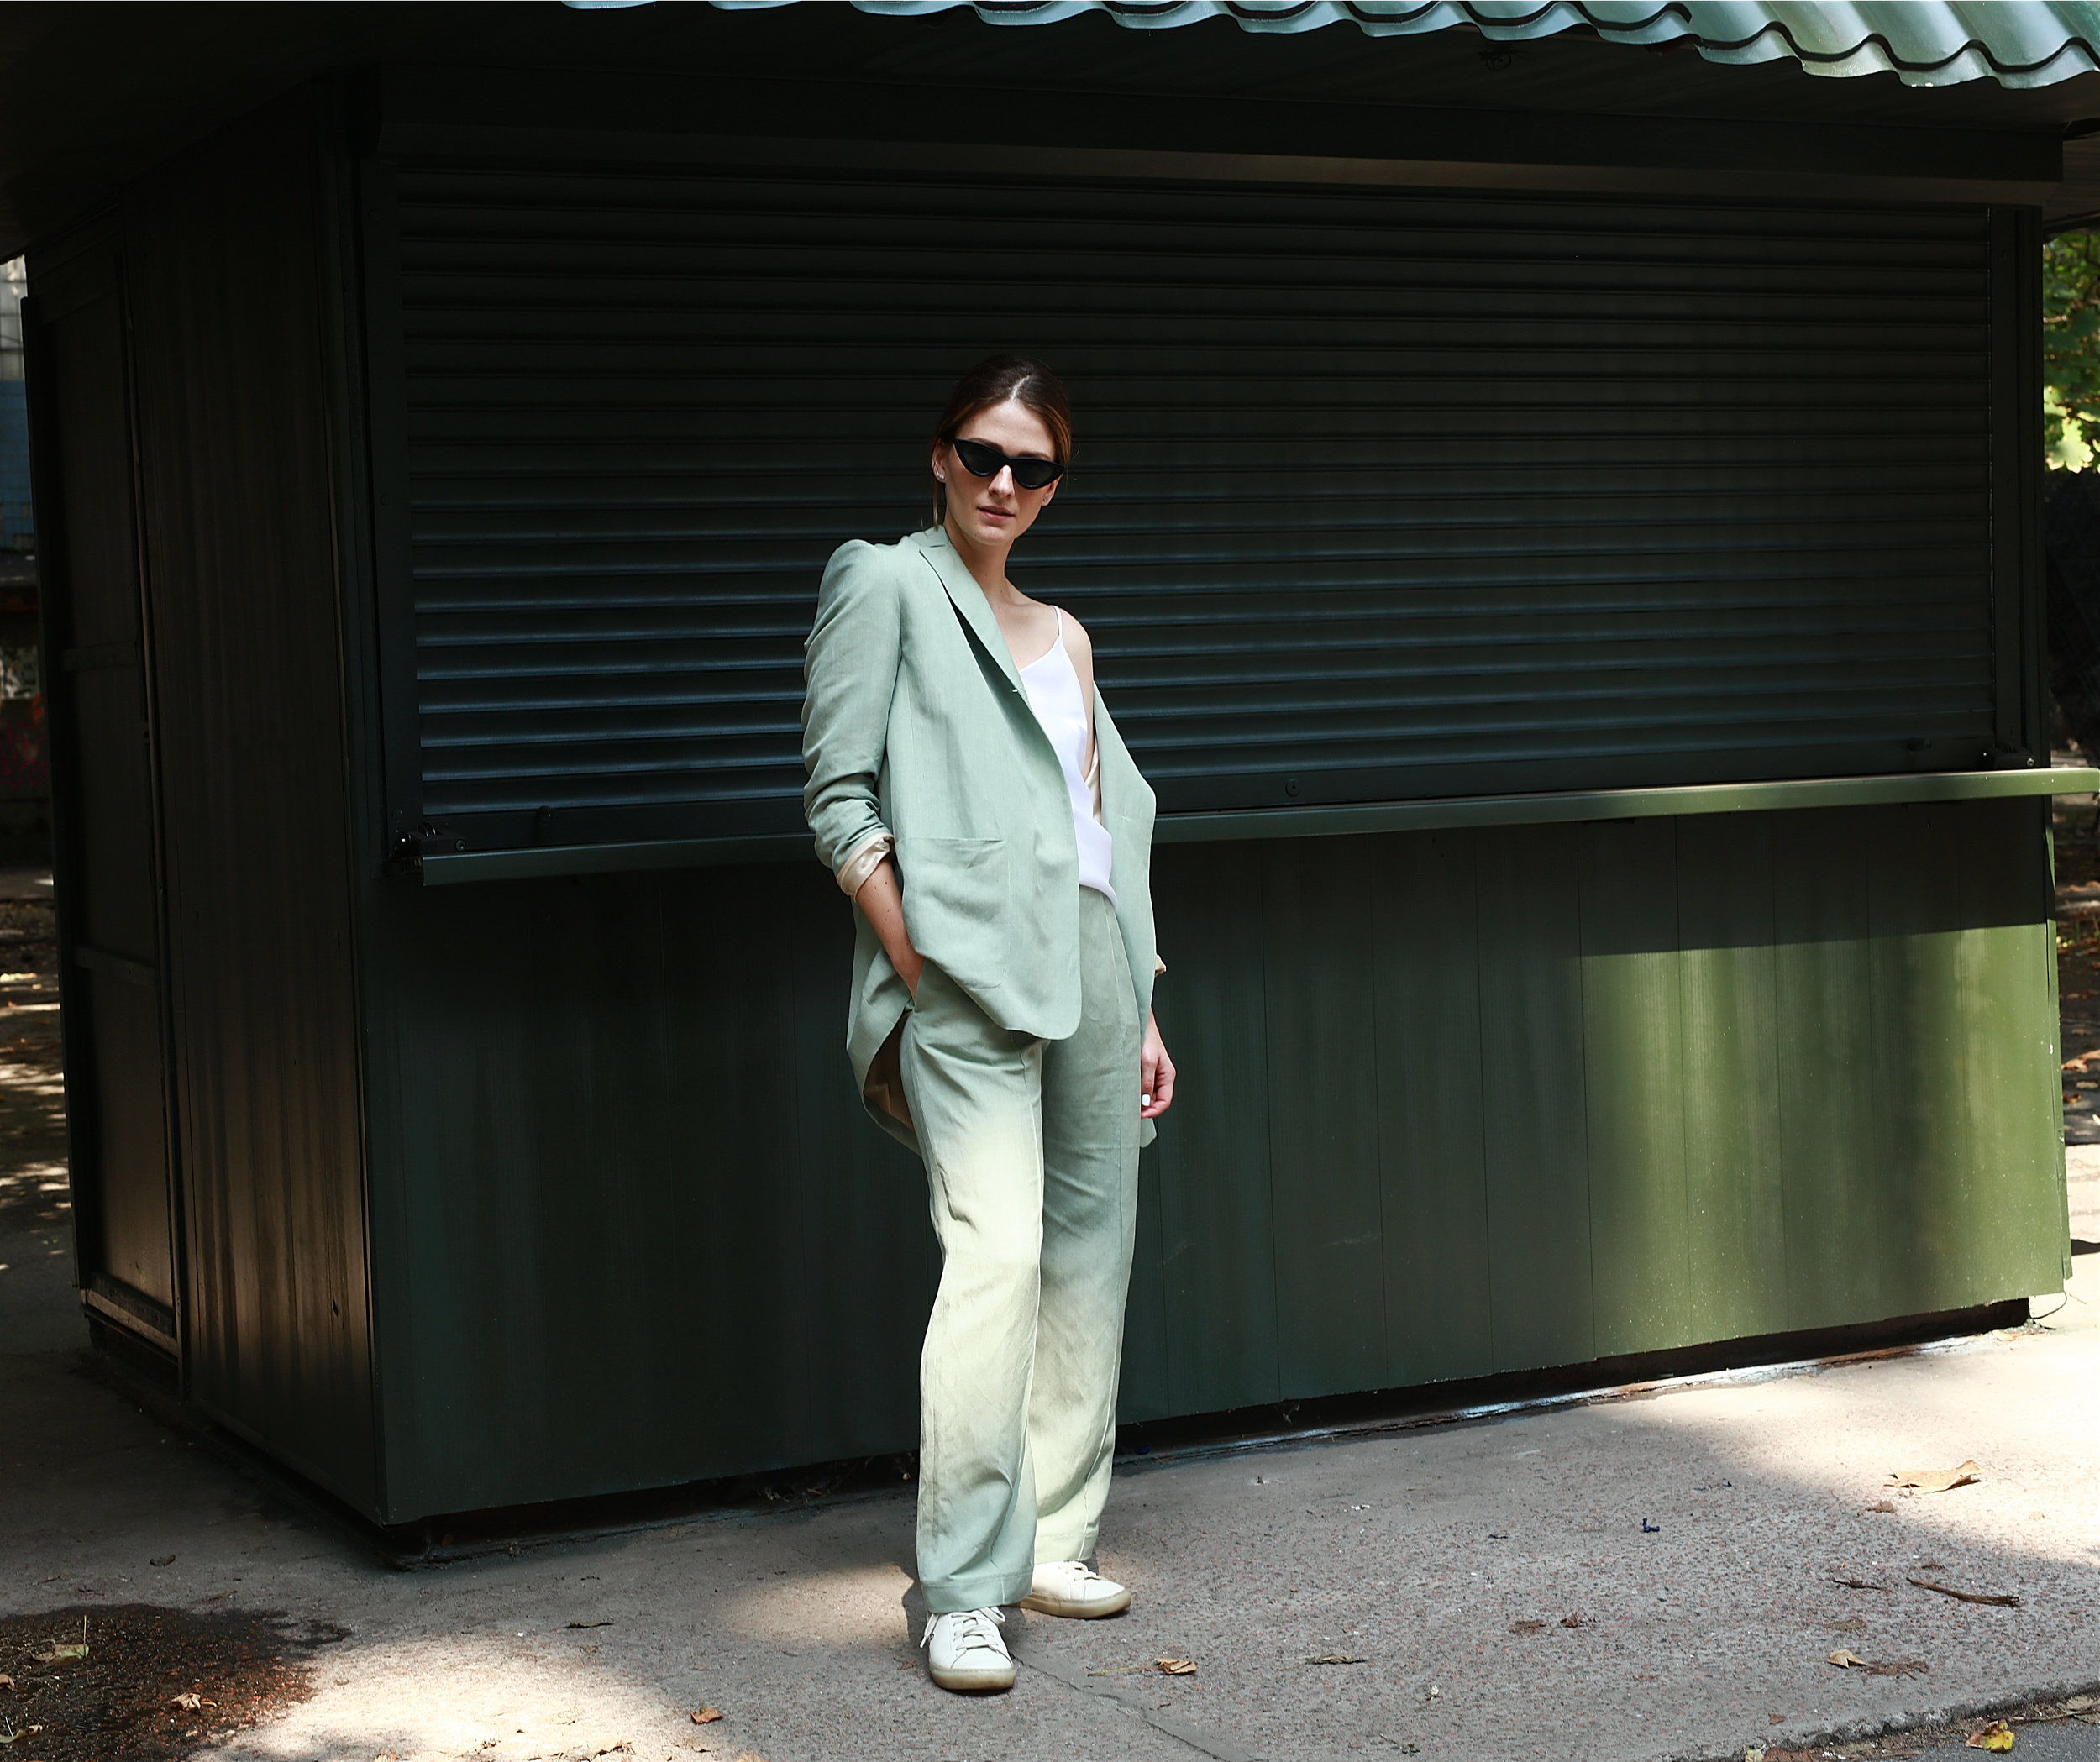 annaporter-linen-jacket-trousers-outfit-fashion-blogger-1